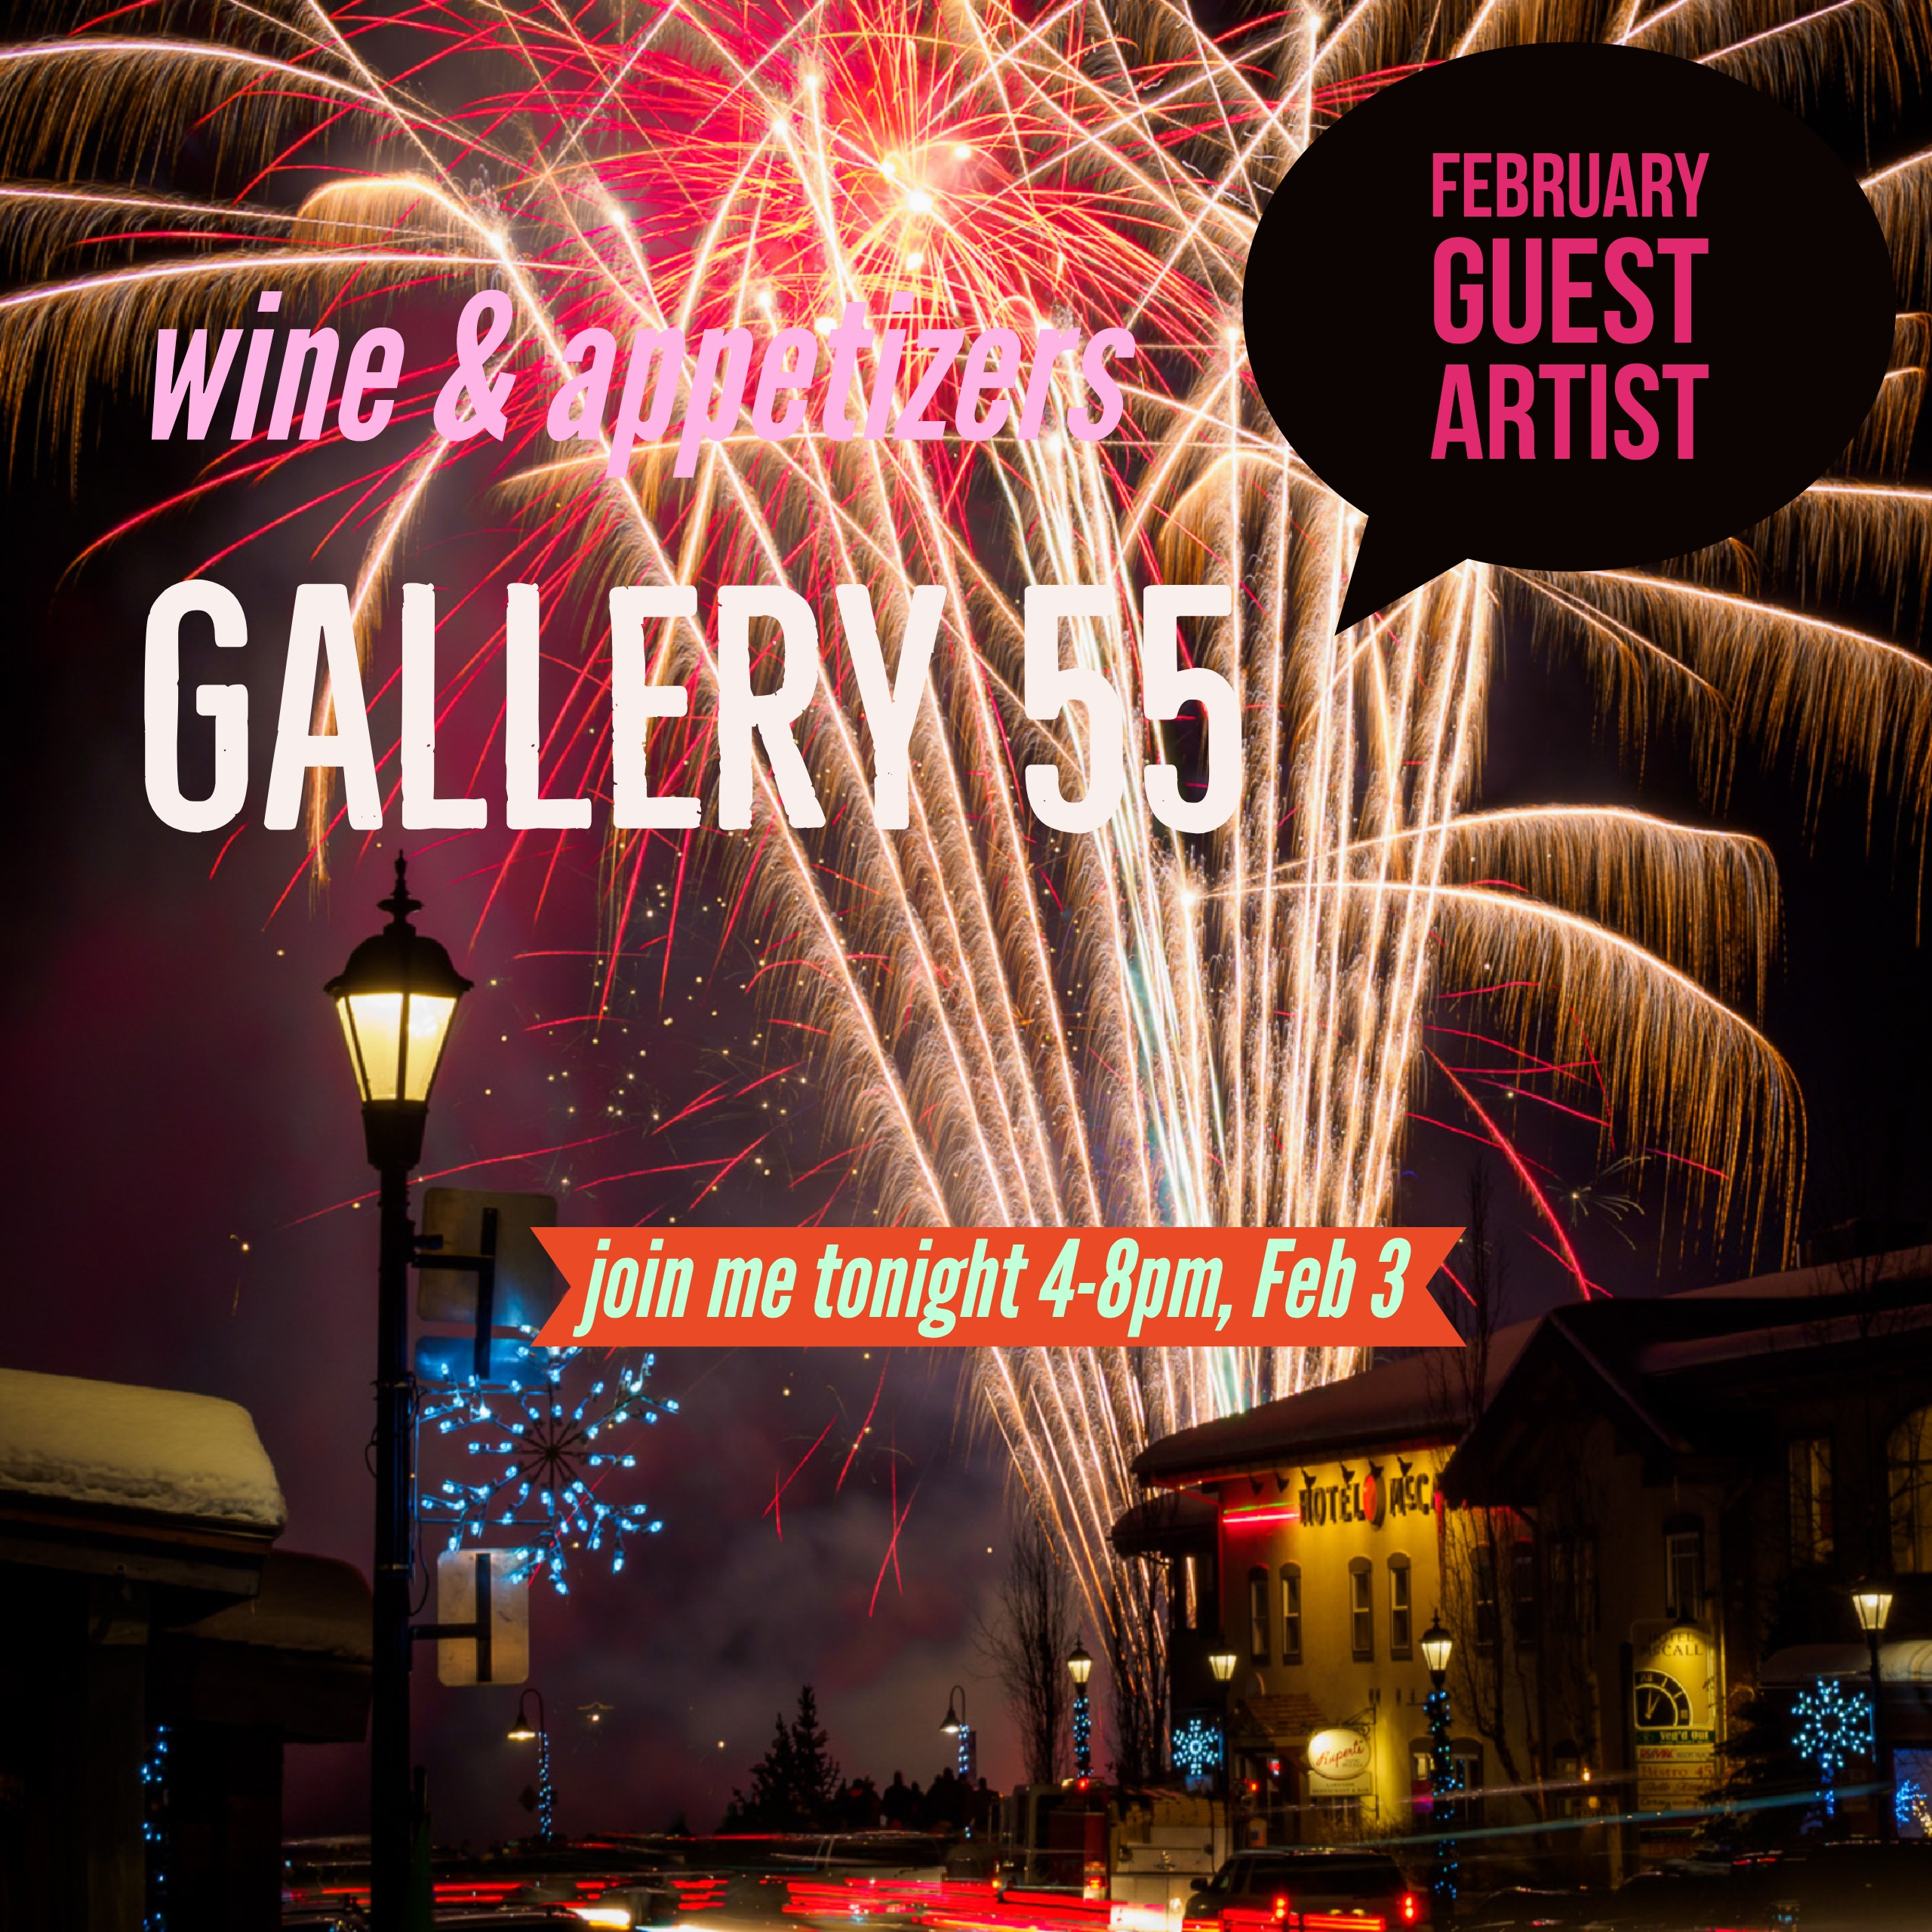 FEBRUARY GUEST ARTIST AT GALLERY 55